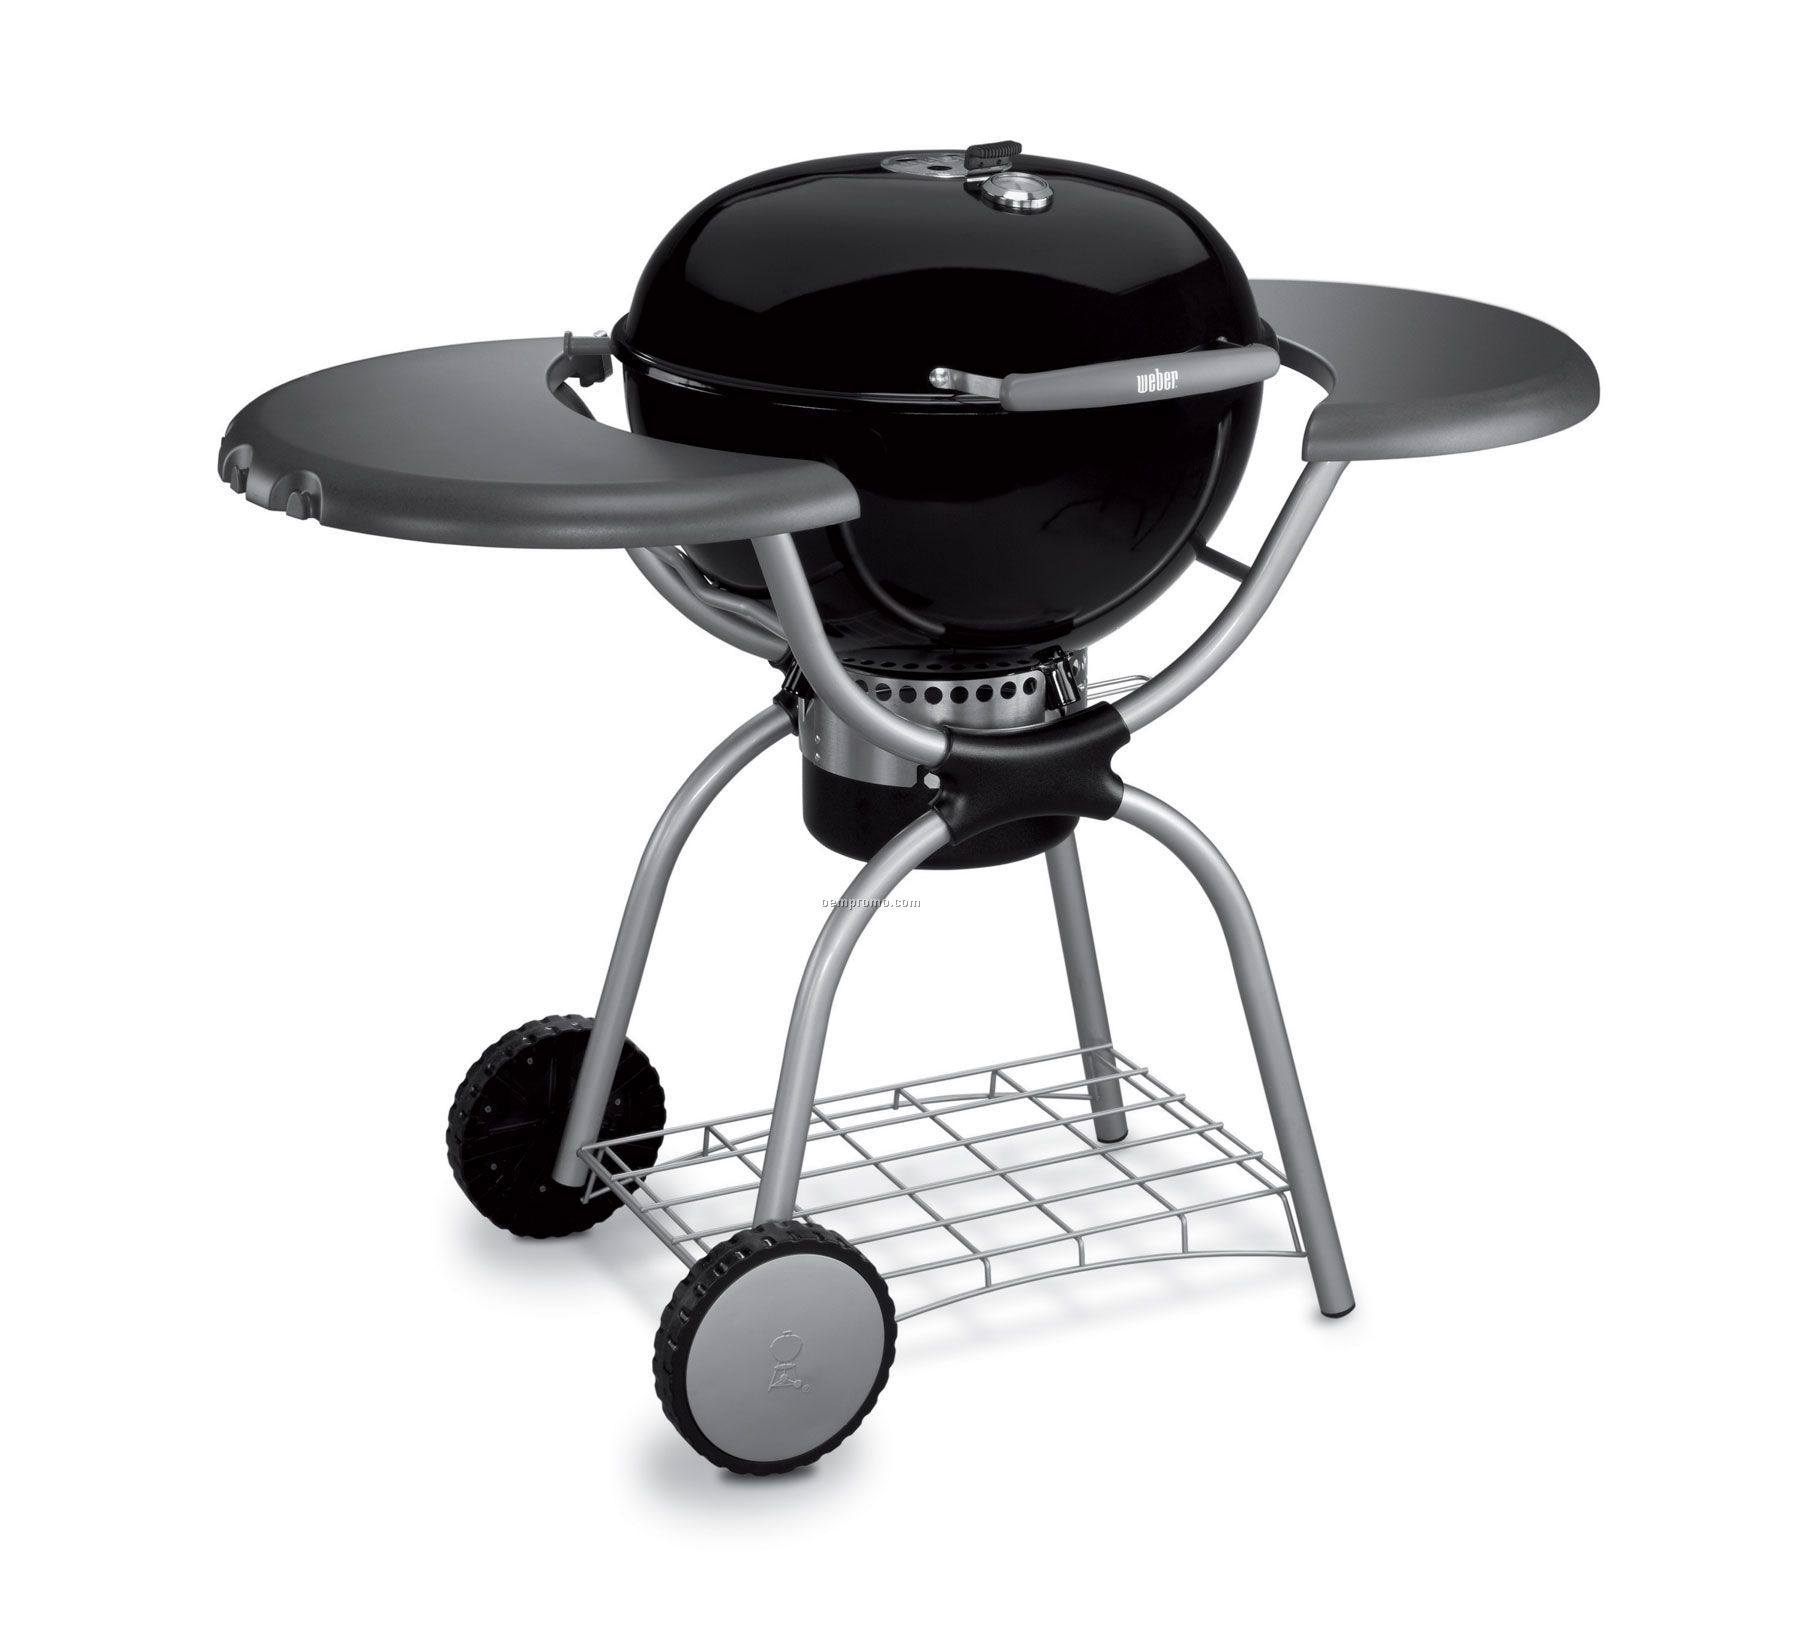 Weber One-Touch Silver Review - Product Reviews and Reports